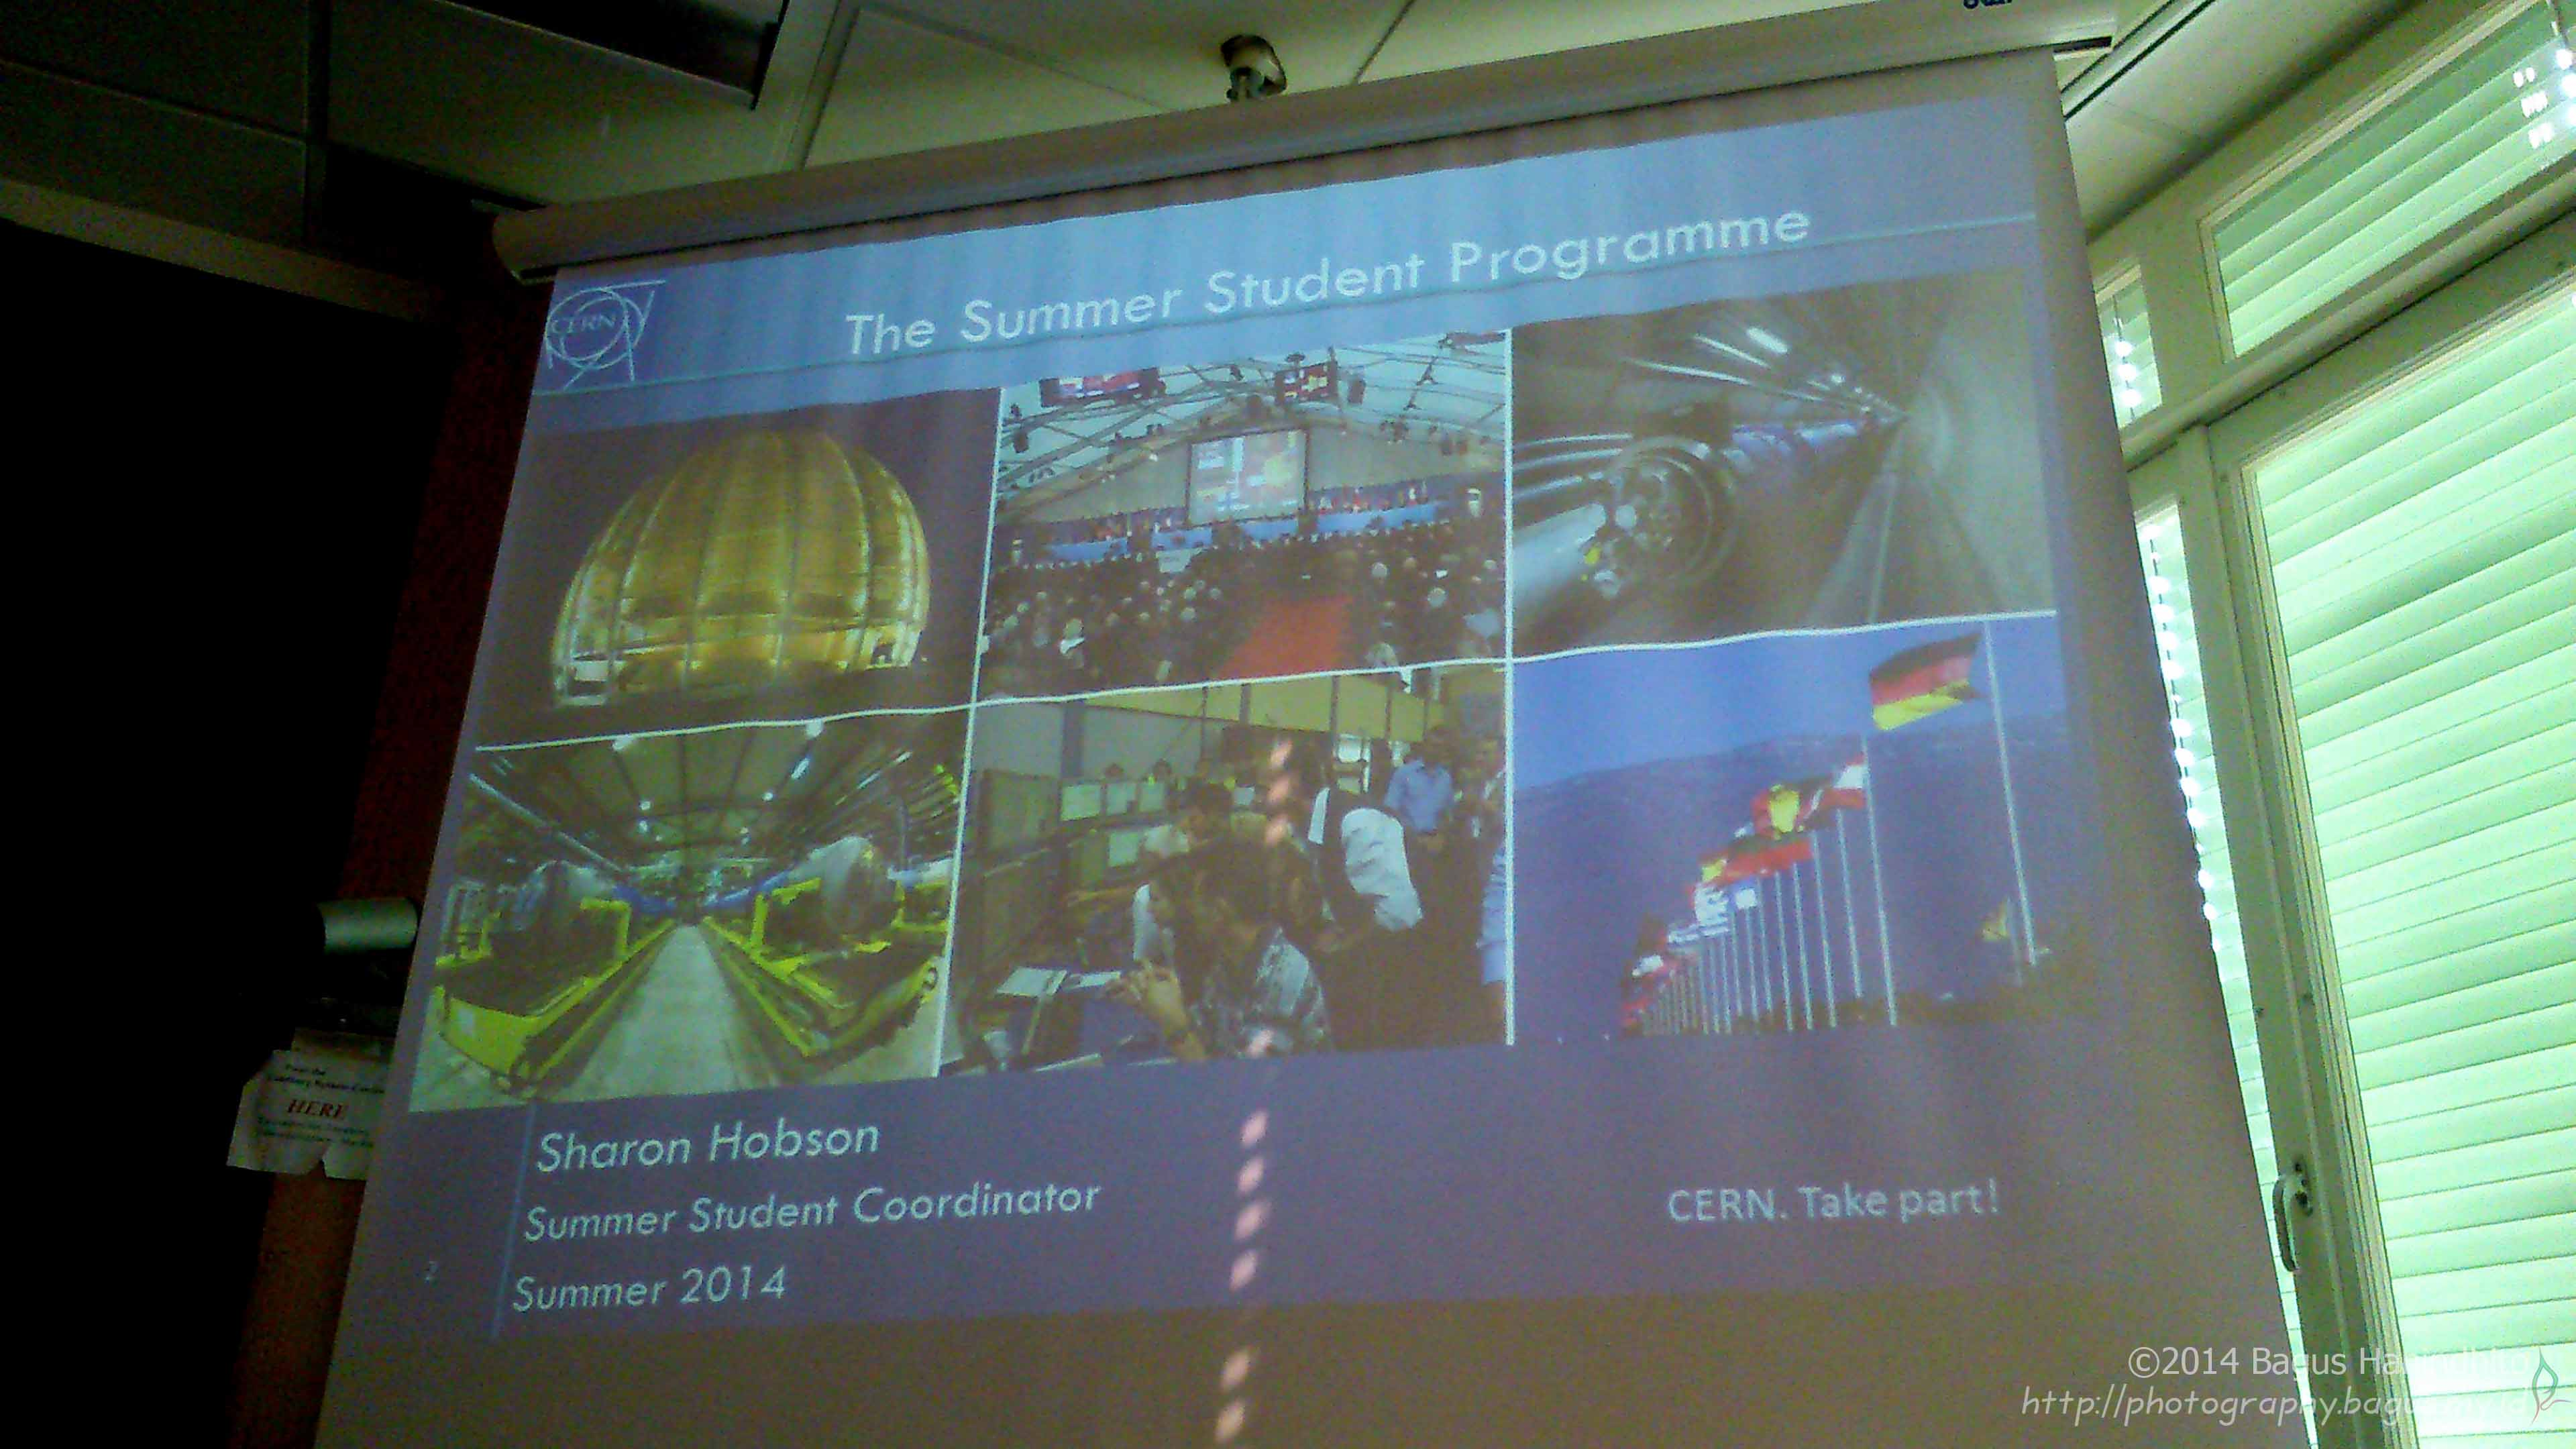 Inauguration Presentation of CERN Summer Student 2014 from the committee. Let the awesomeness be started!